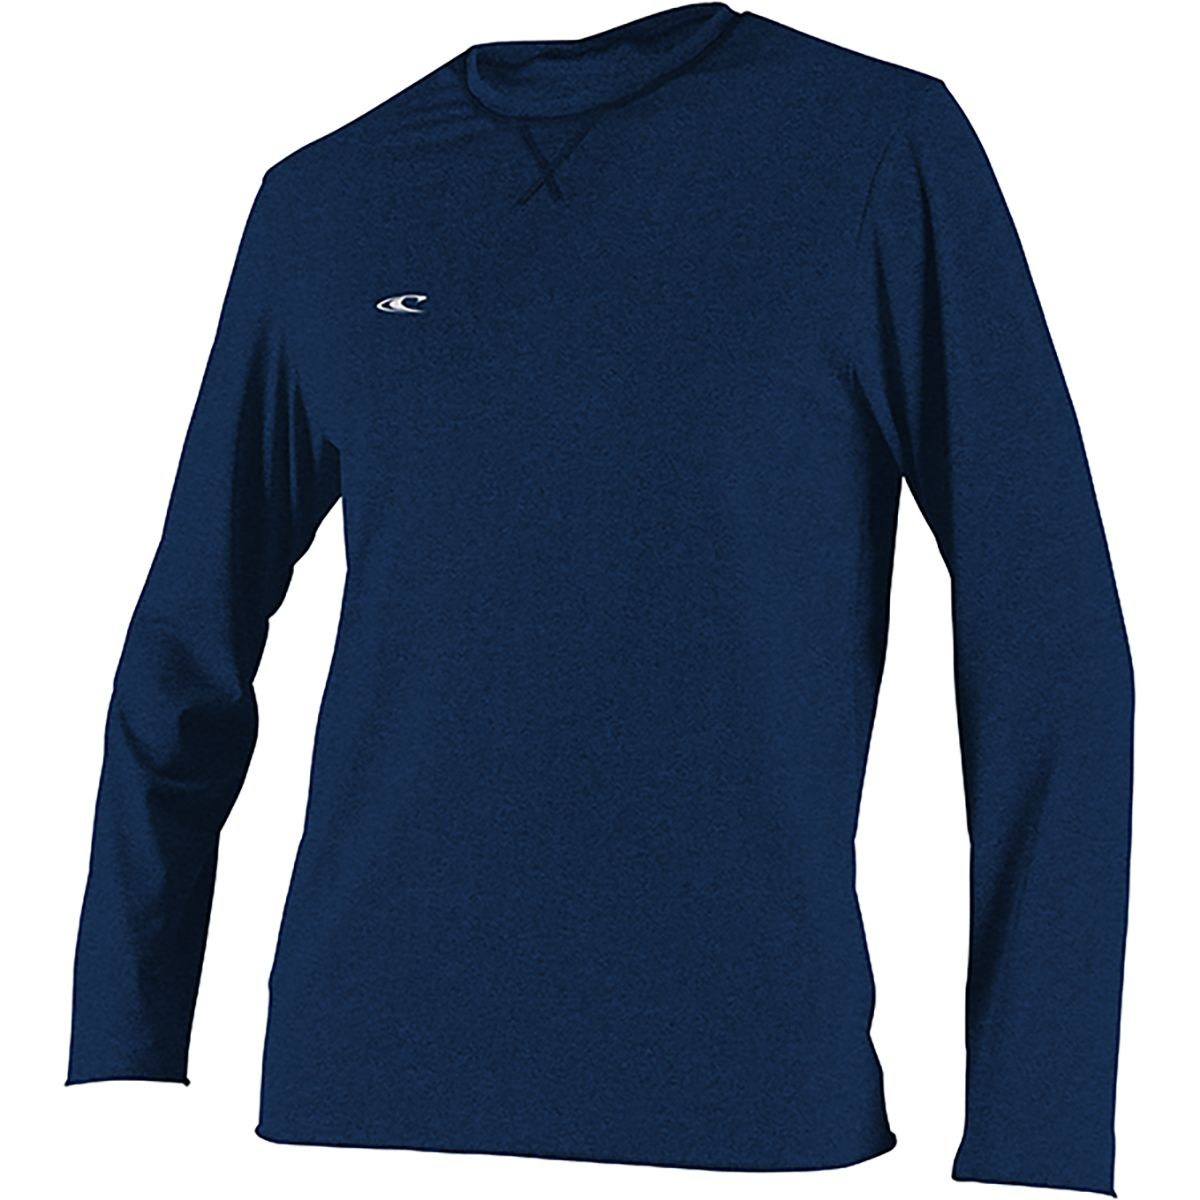 O'neill Men's Hybrid Sun Long-Sleeve Tee - Blue, L